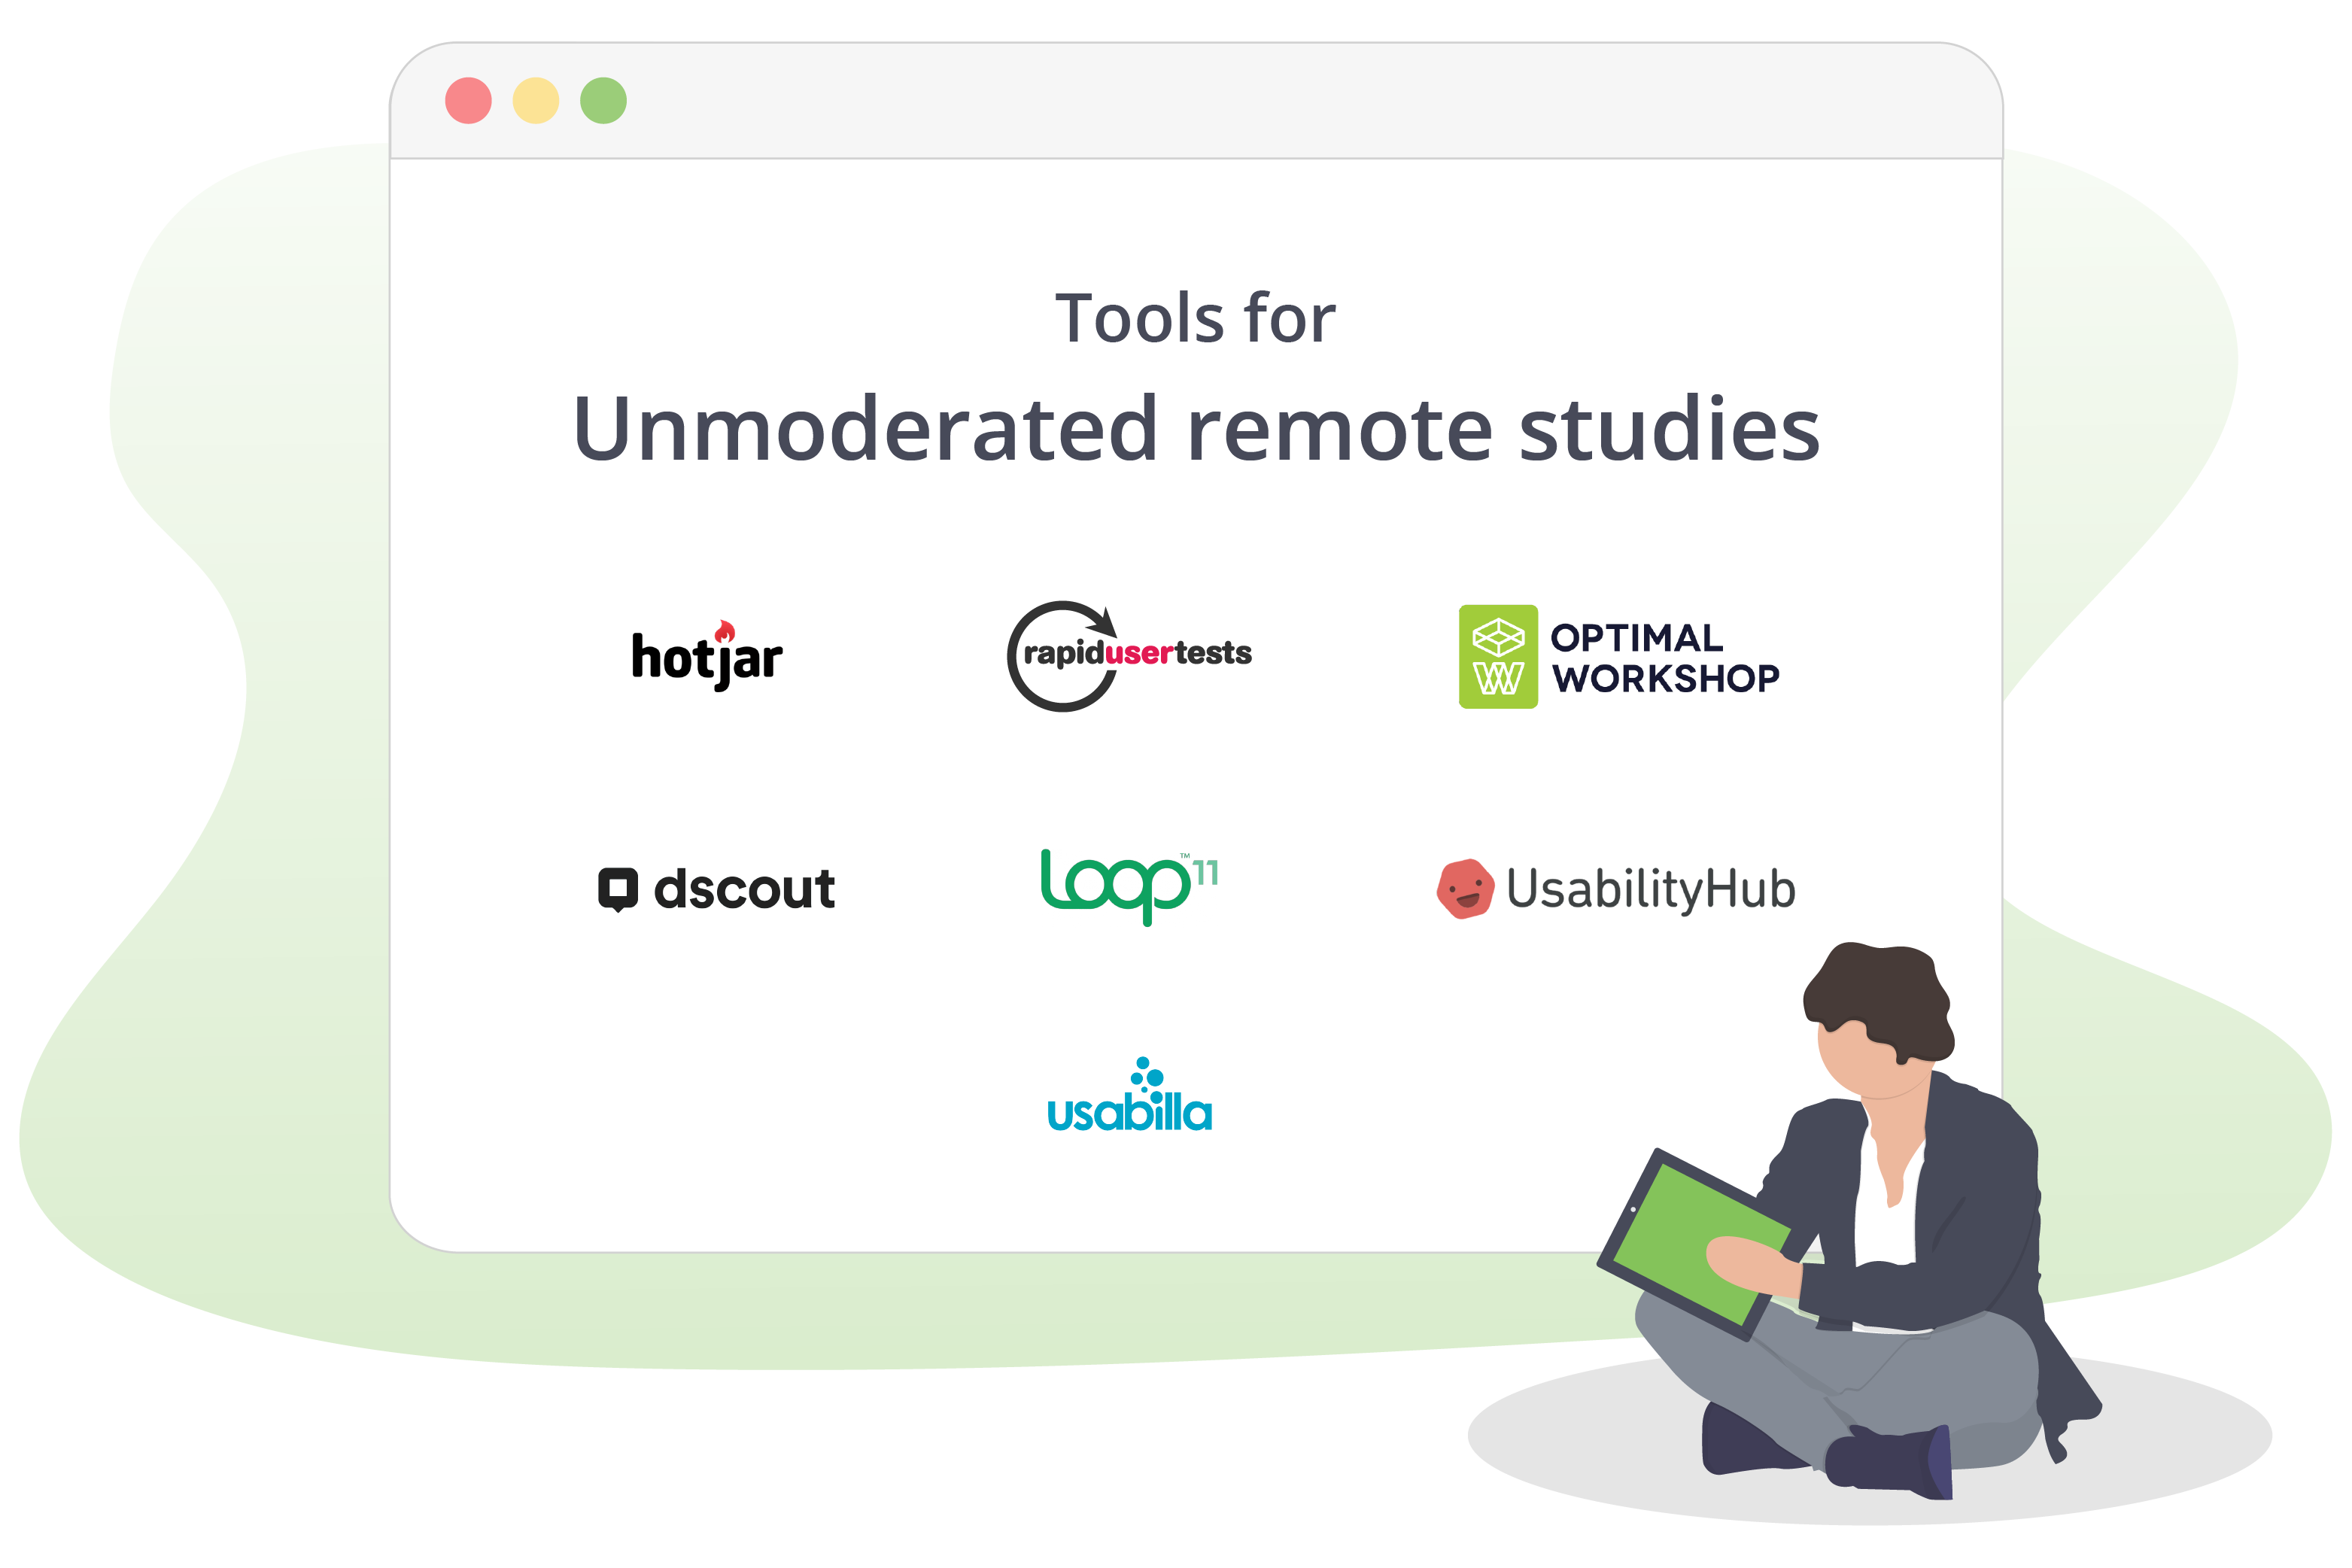 Tools for unmoderated remote studies